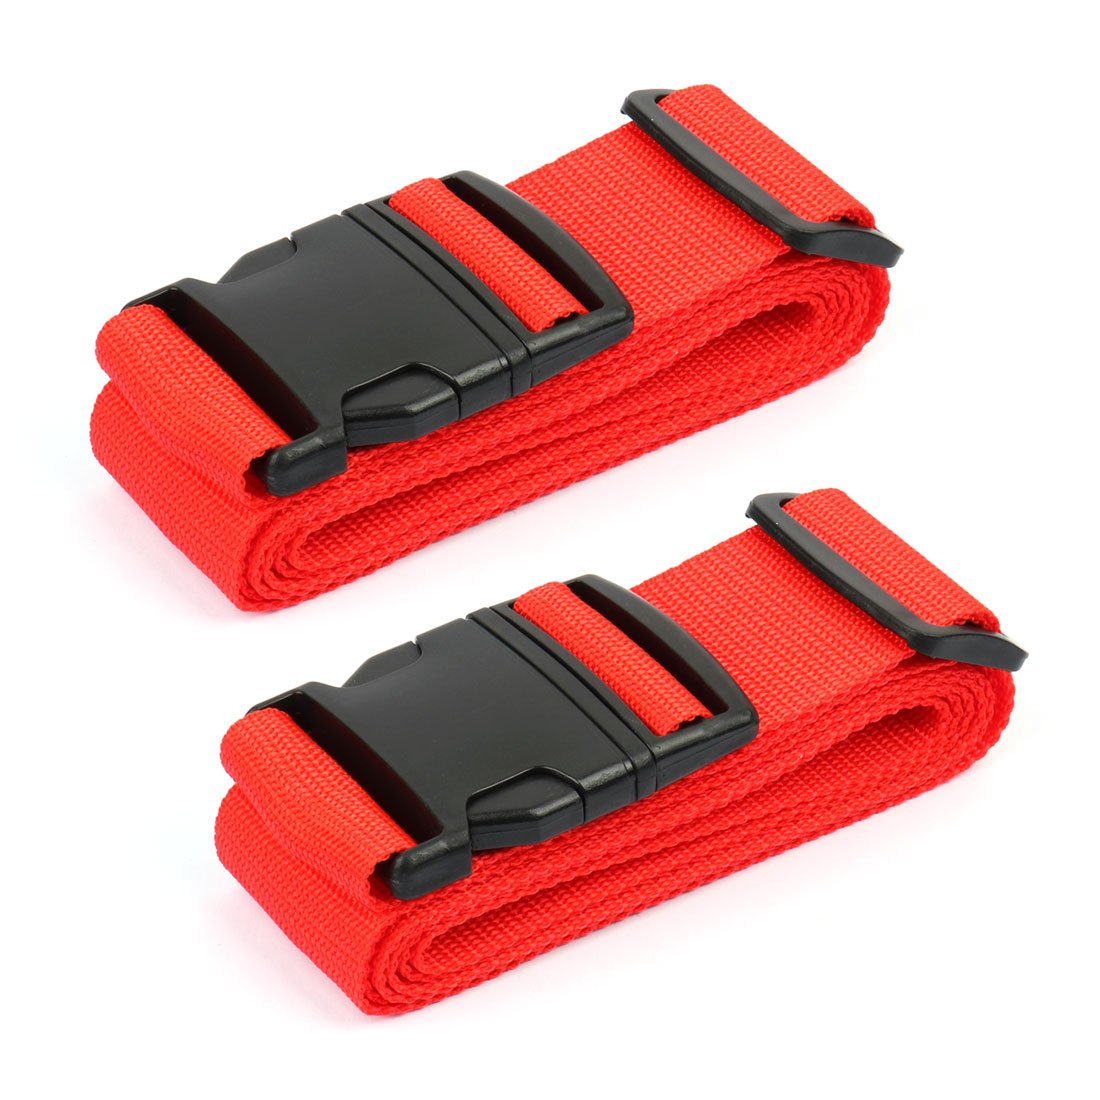 uxcell® 2 Pack Adjustable Travel Luggage Suitcase Strap Baggage Backpack Bag Cross Belt 2M, Four Colors a17011300ux0272